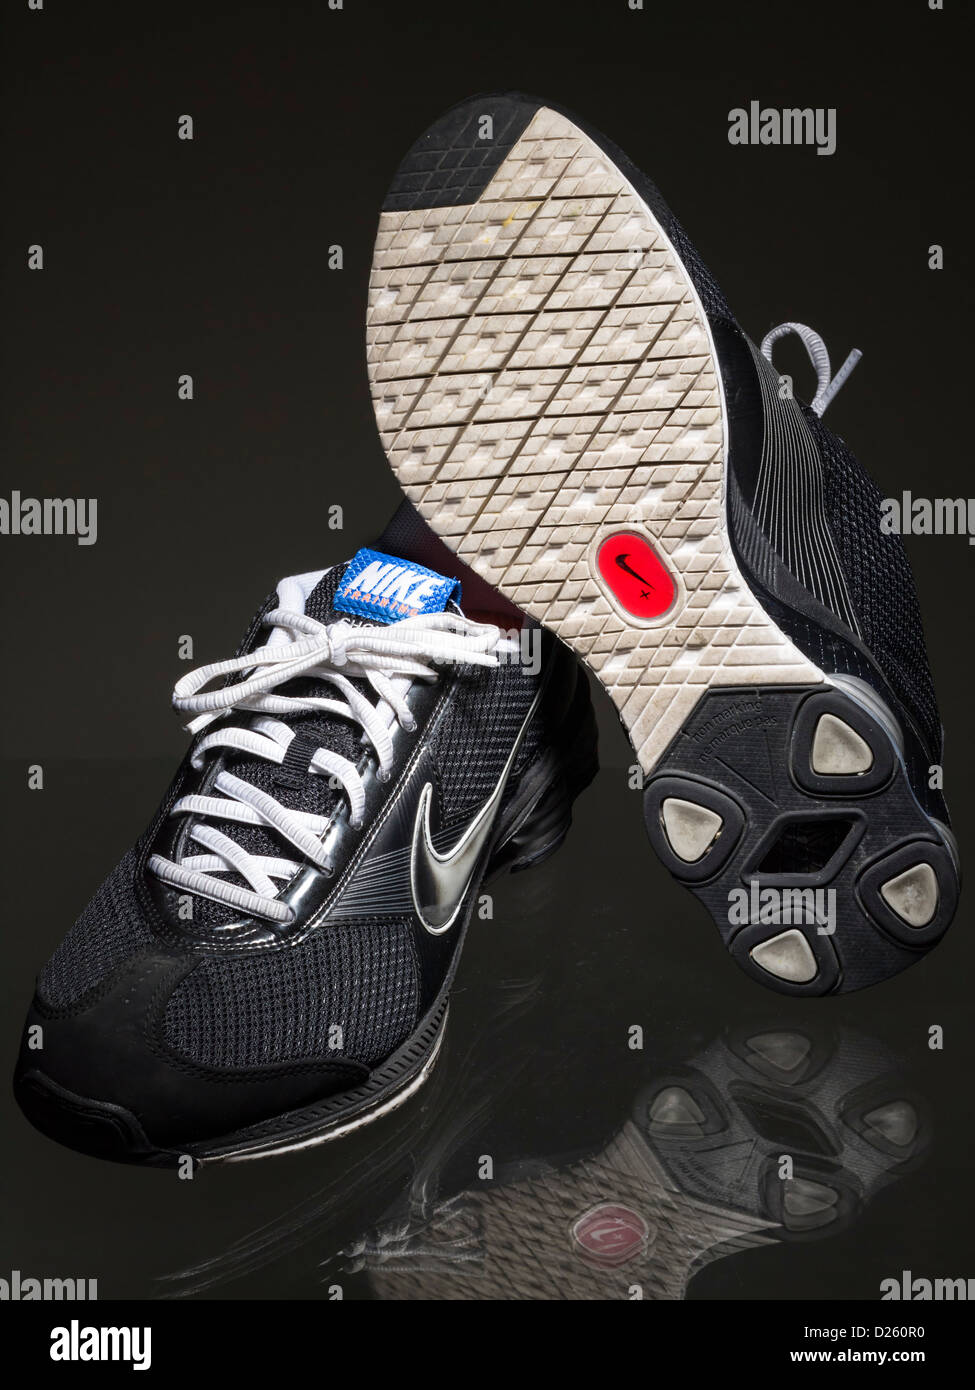 Nike PhotosBlack Shoe Nike Sole Black Stock Running 4R35AjqL